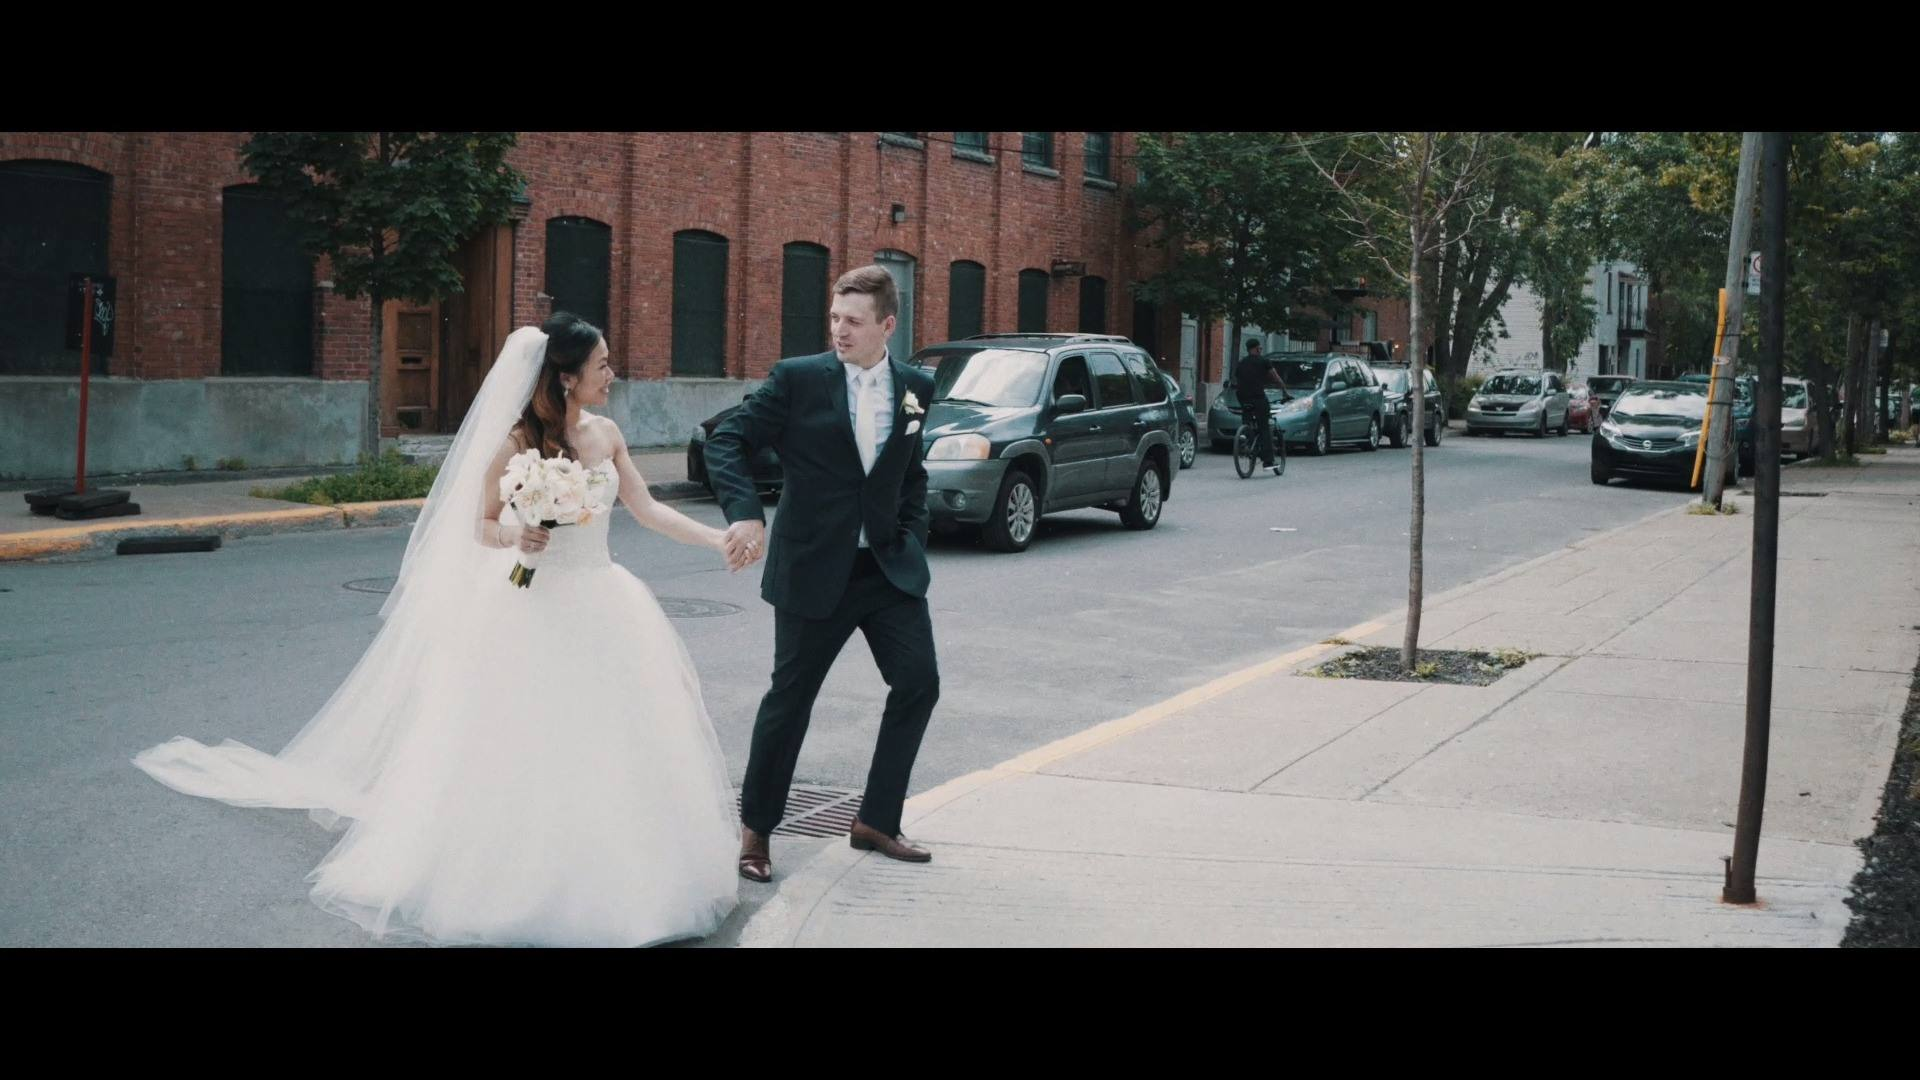 Alice & Dominic - Urban wedding